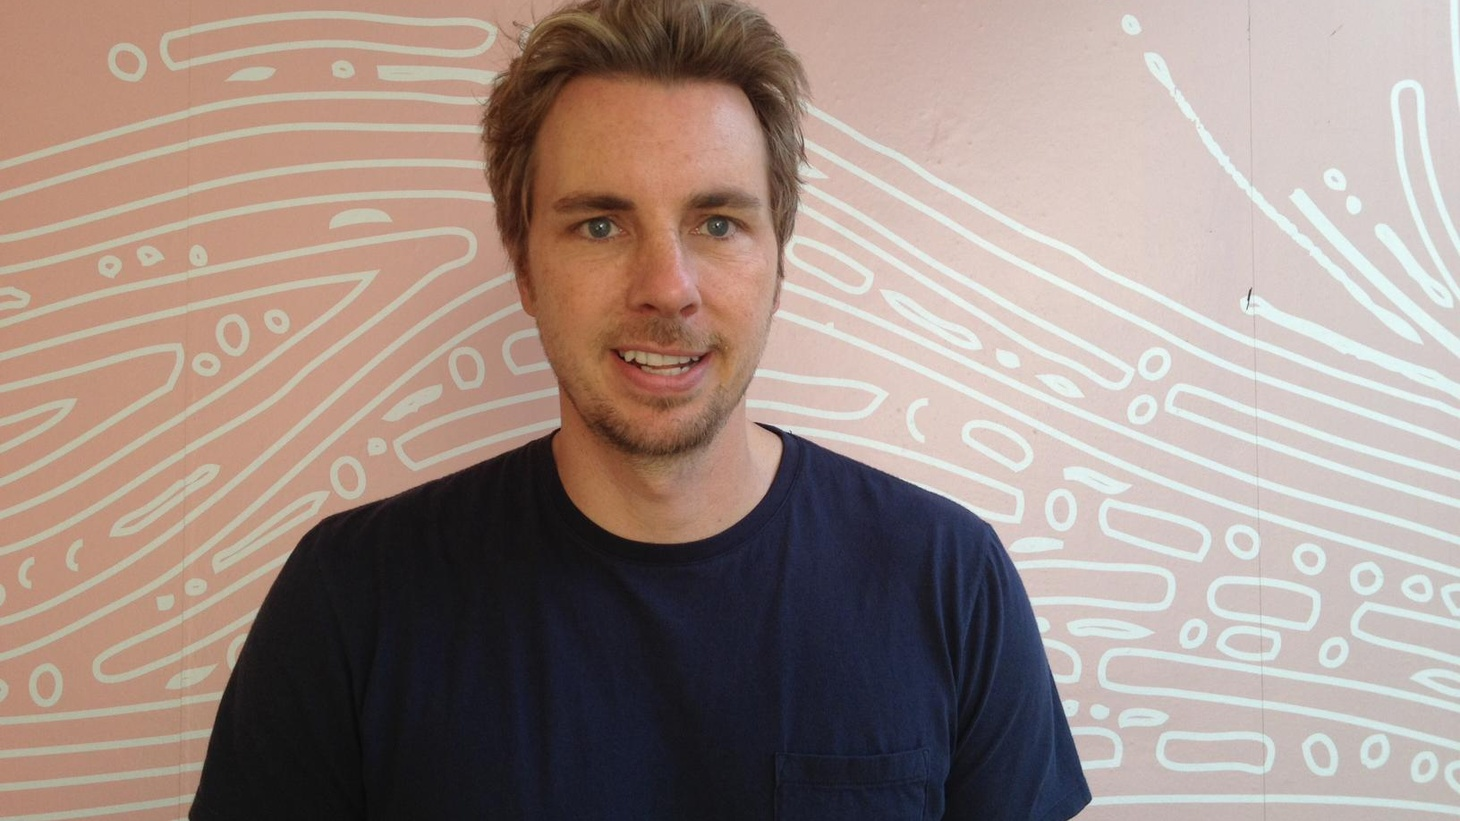 Elvis talks to actor Dax Shepard, who starred in, co-directed, and wrote the new film 'Hit and Run.'